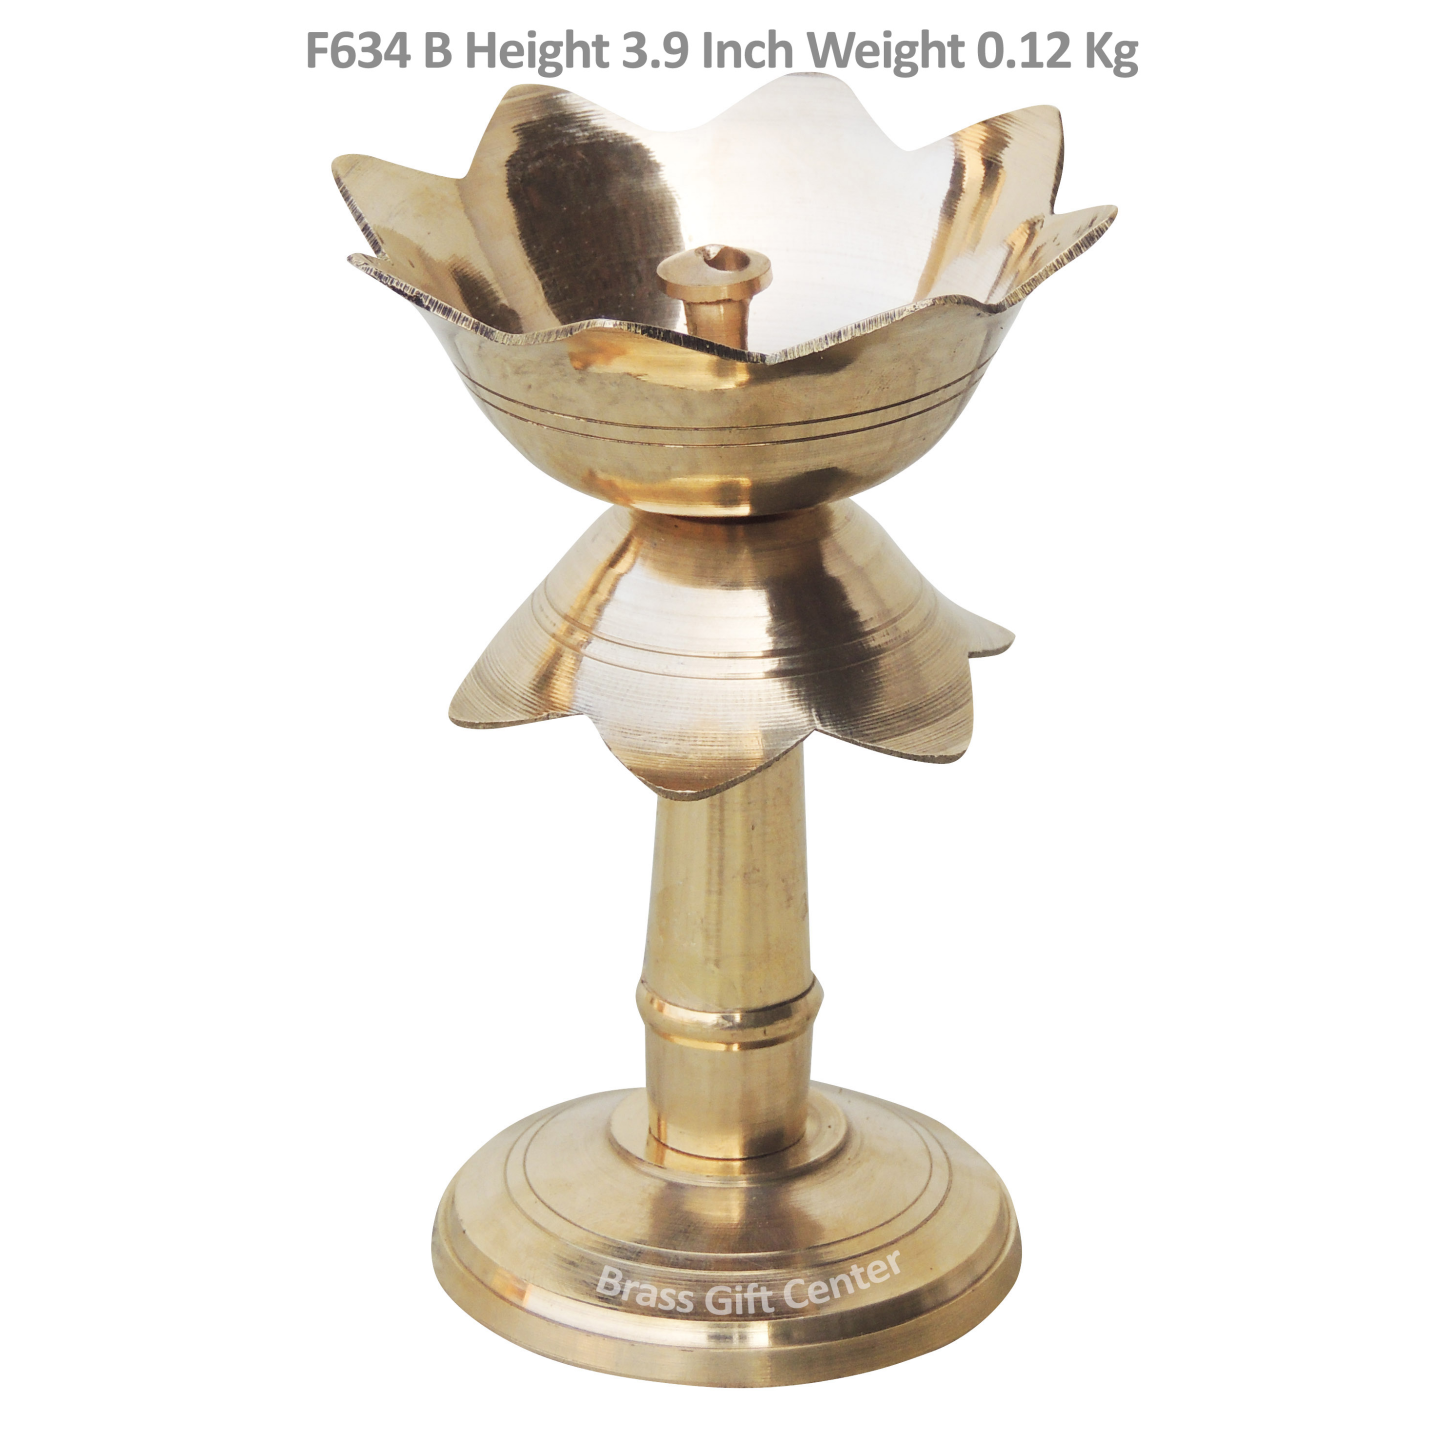 Brass Lotus Shape Deepak With Stand - 3.9 Inch (F634 B)